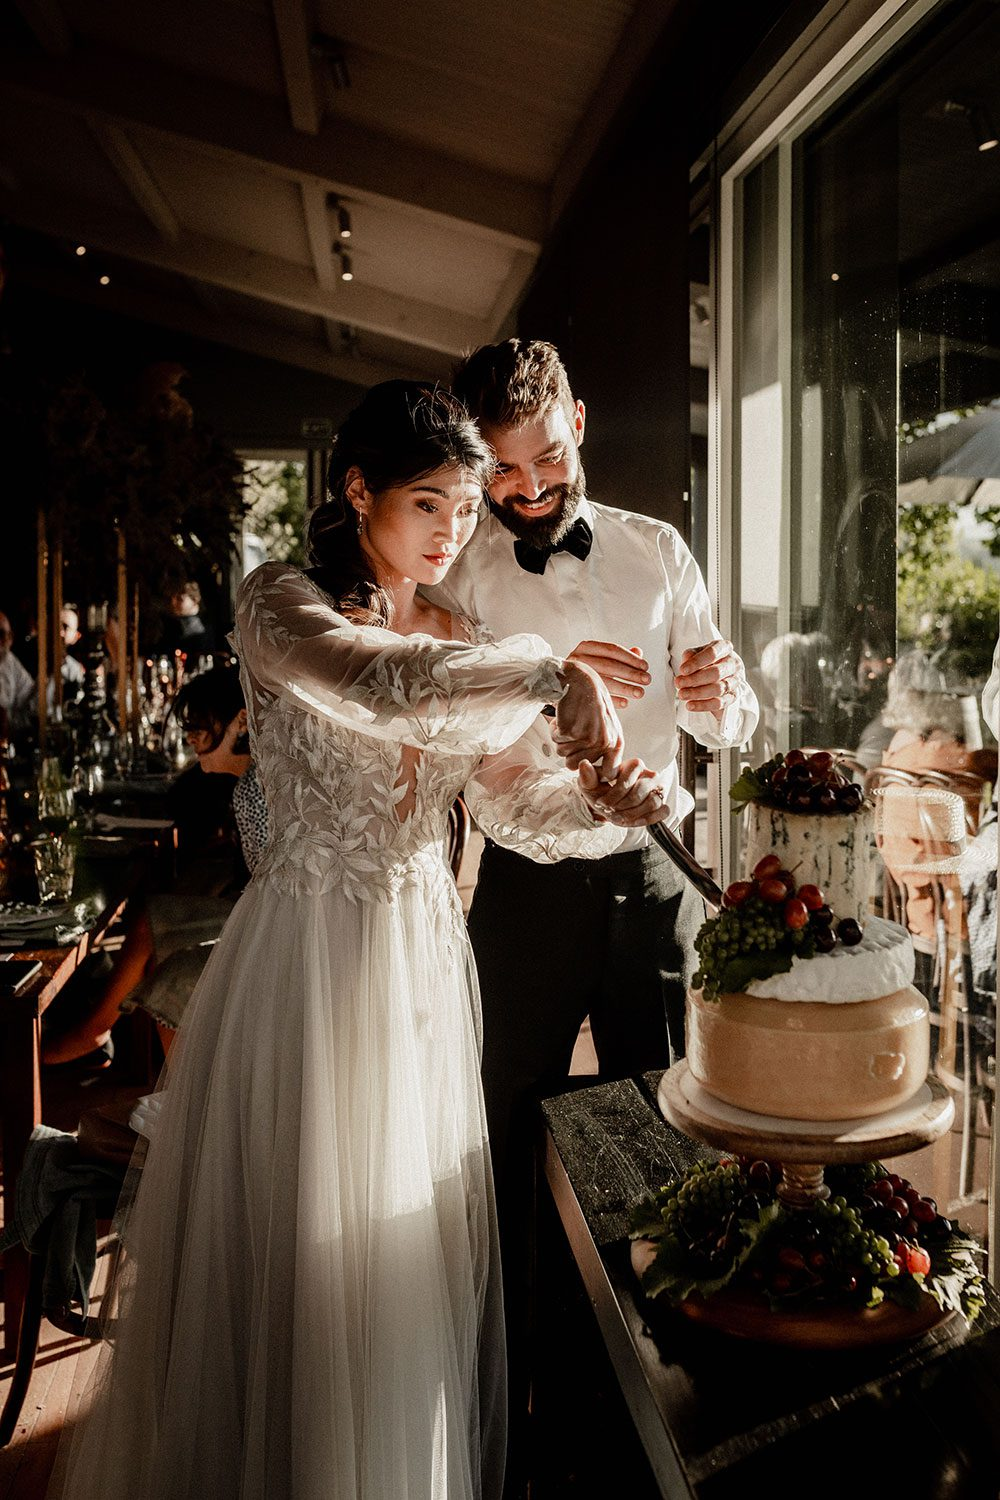 Bride wearing bespoke designer wedding dress by Vinka Bridal Boutique NZ, adorned with delicate applique lace and puffed sleeves - cutting cake